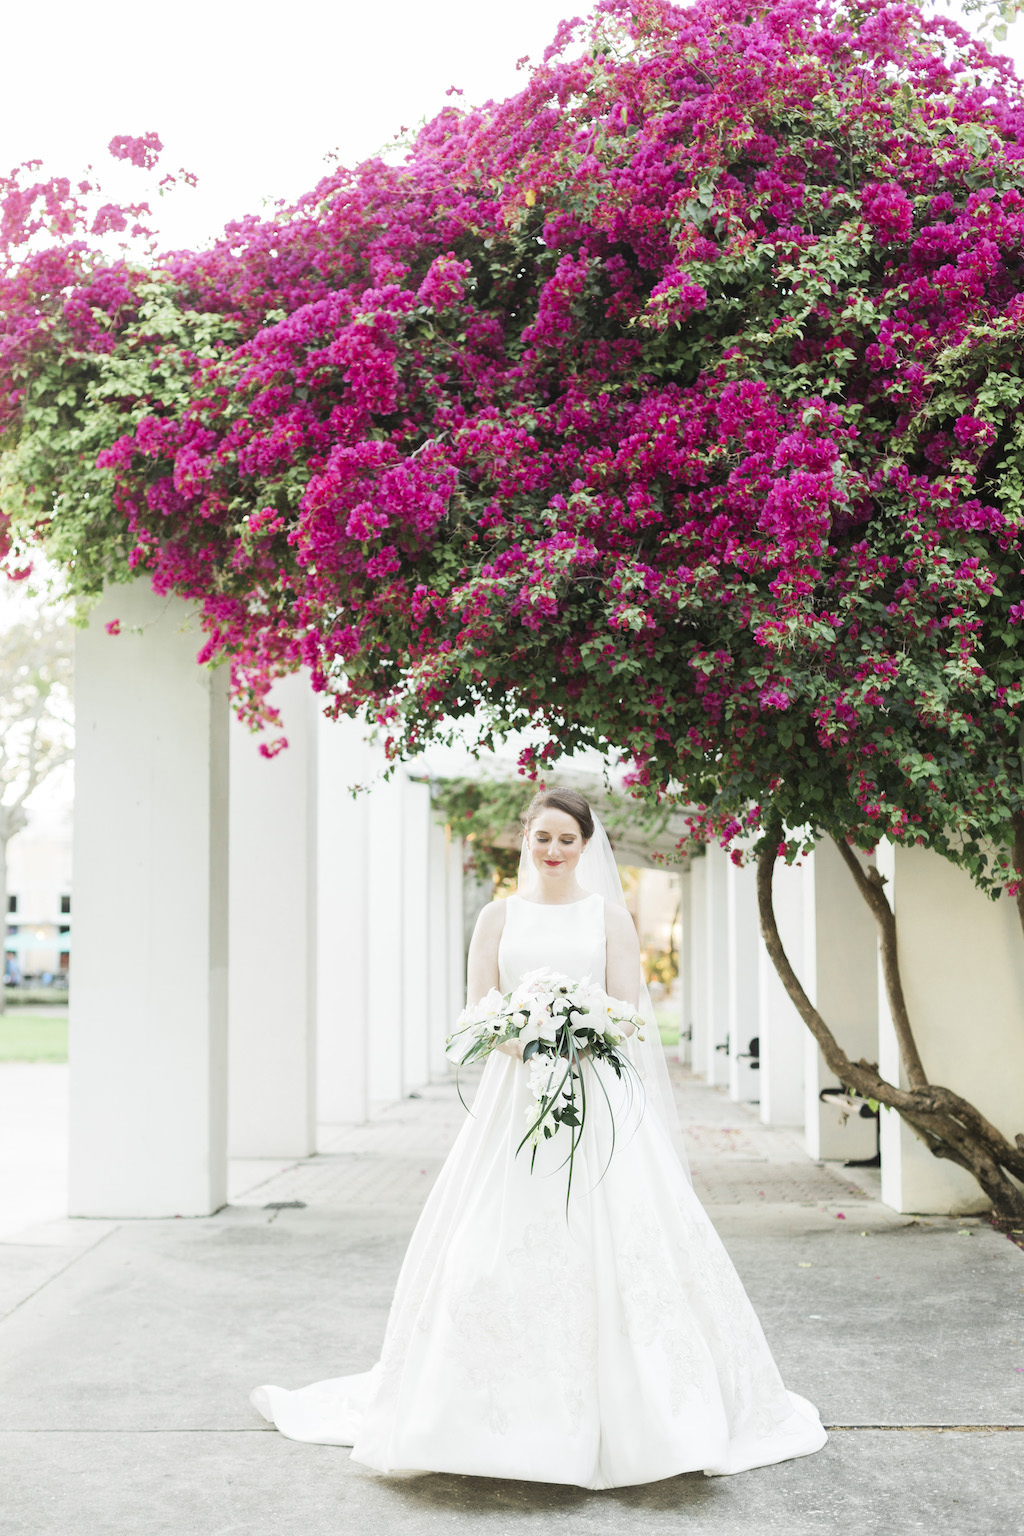 Florida Bride in White Traditional Sleeveless Randy Fenoli Kleinfeld Bridal Wedding Dress | White and Green Floral Bouquet | Outdoor Bridal Portraits Downtown St. Pete Straub Park | St. Petersburg Wedding Planner Love Lee Lane